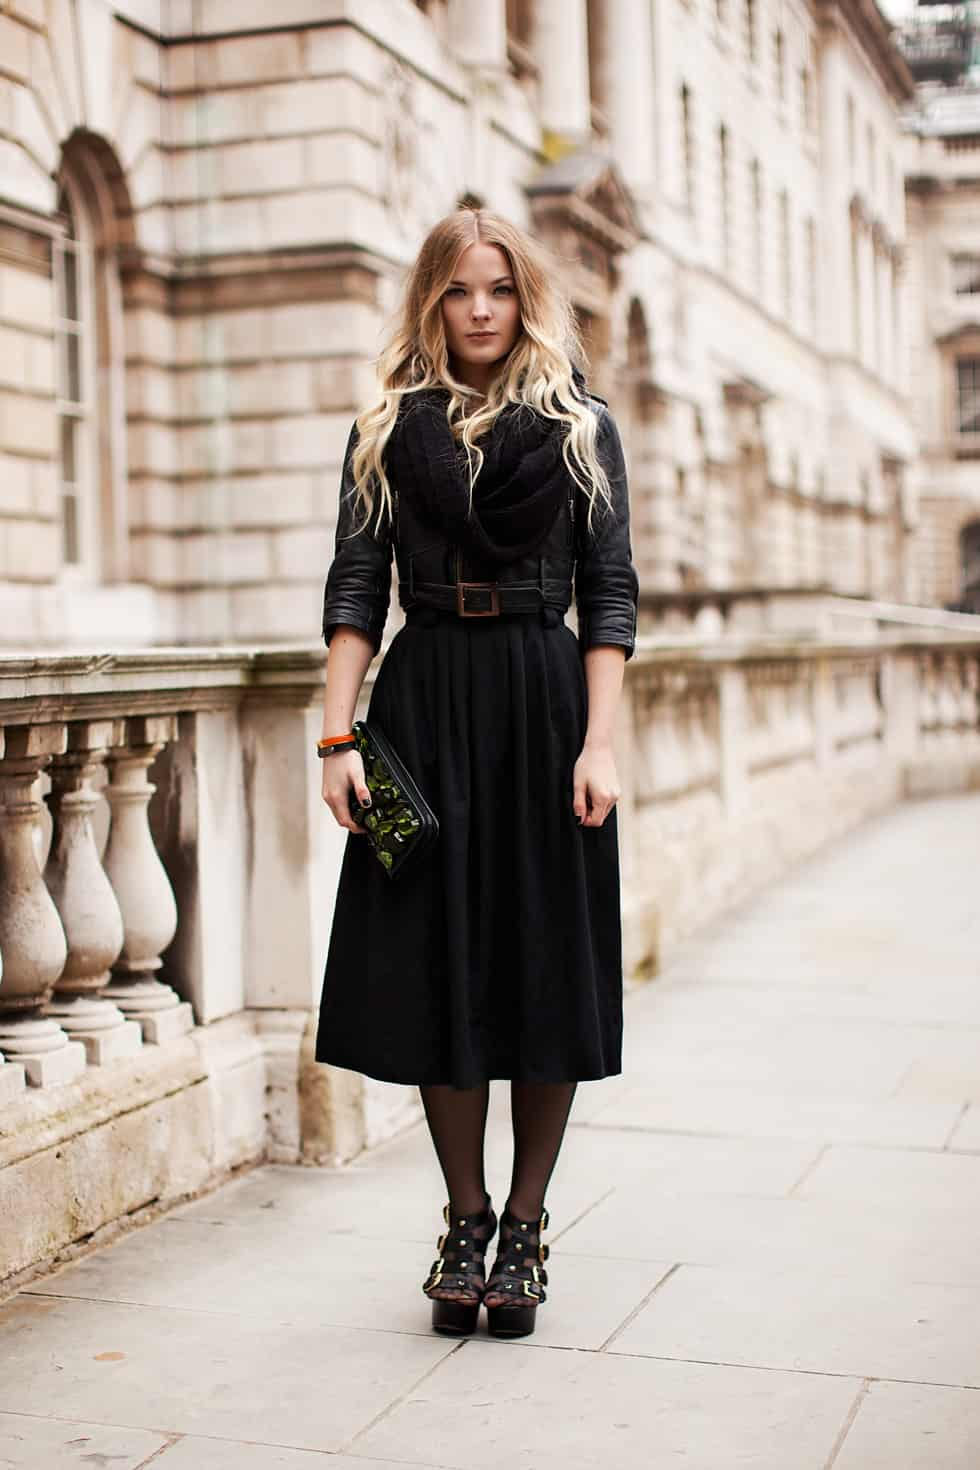 skirts is midi the new mini – the fashion tag blog